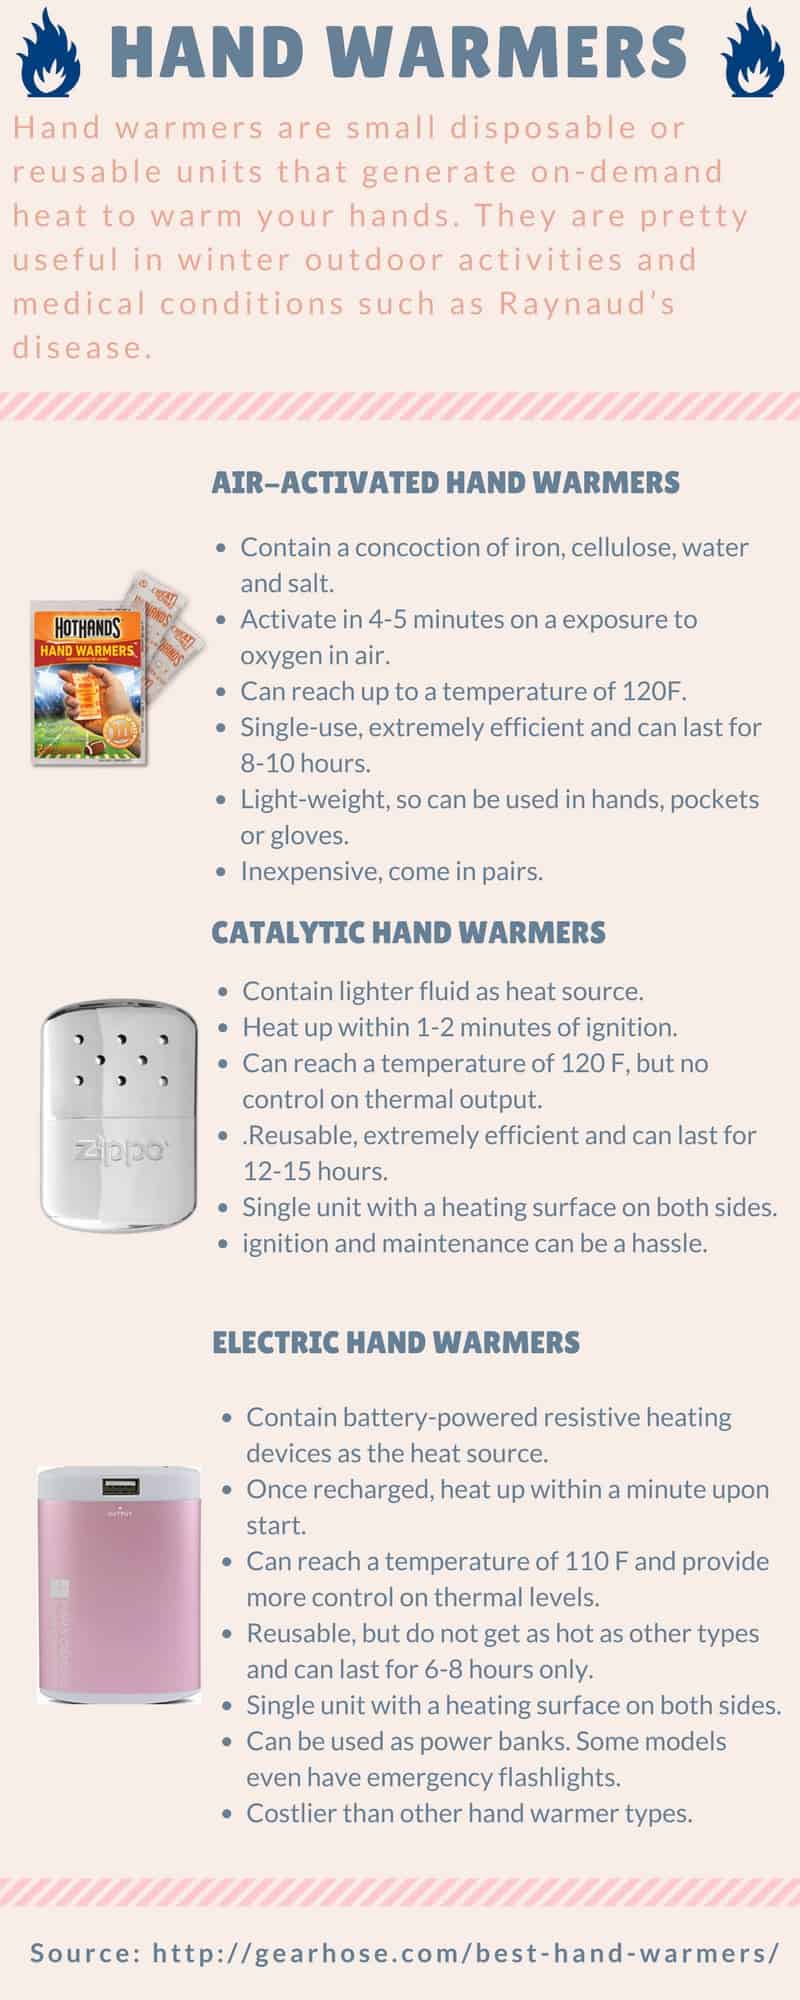 Different types of hand warmers